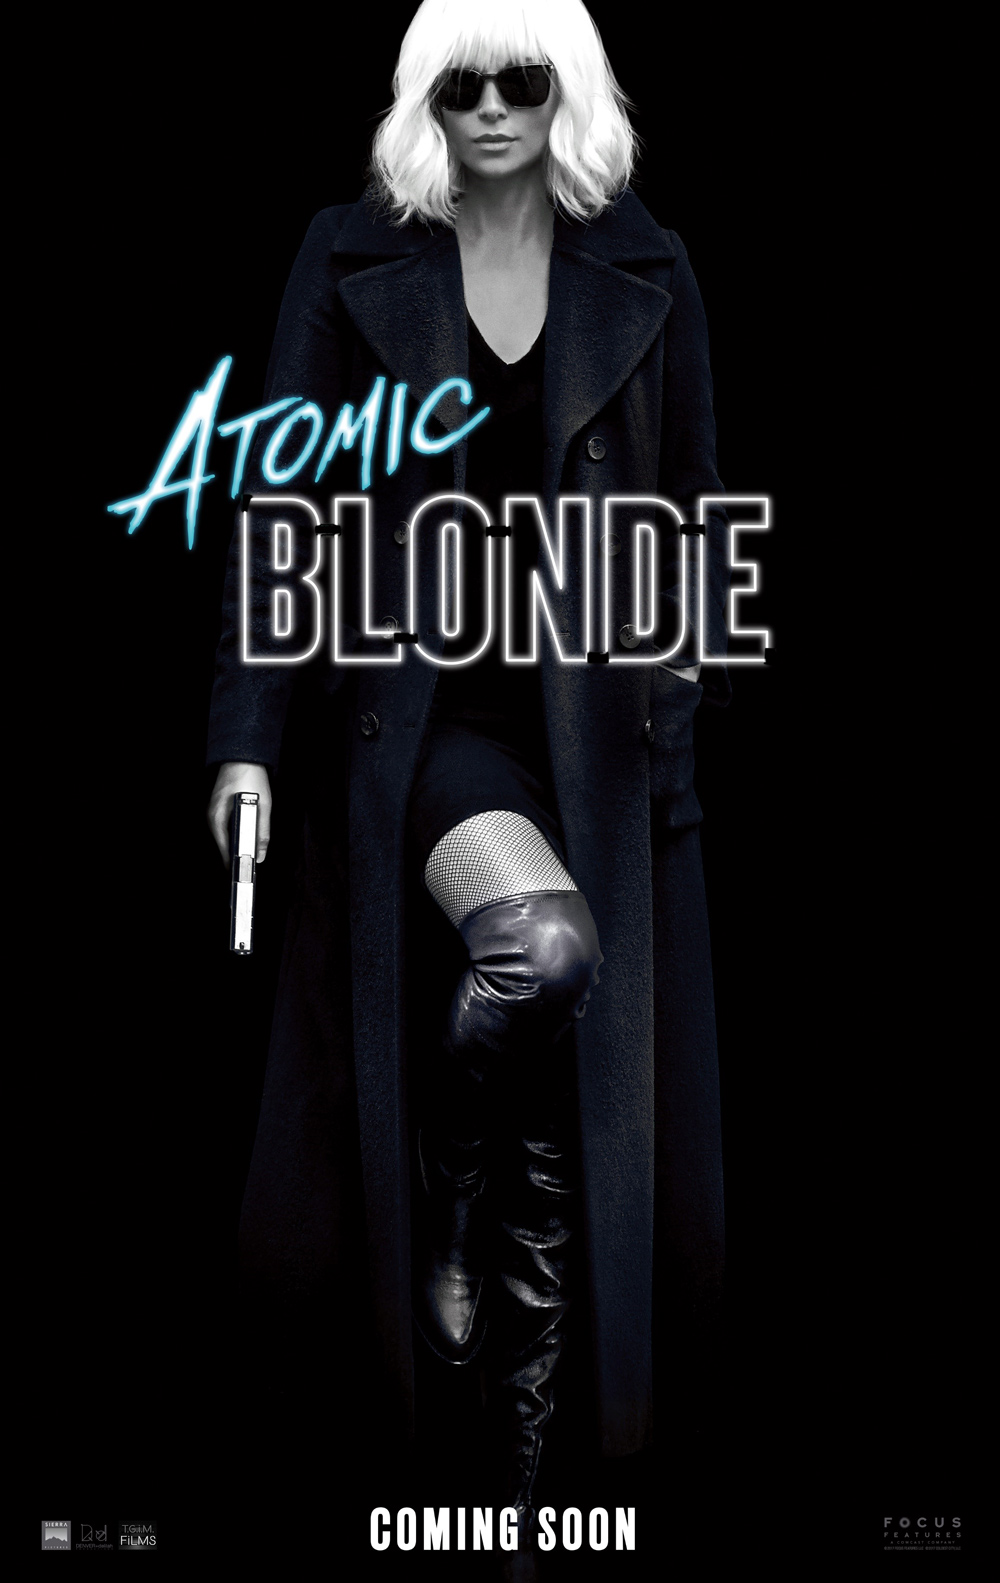 Teaser Poster for Atomic Blonde Starring Charlize Theron